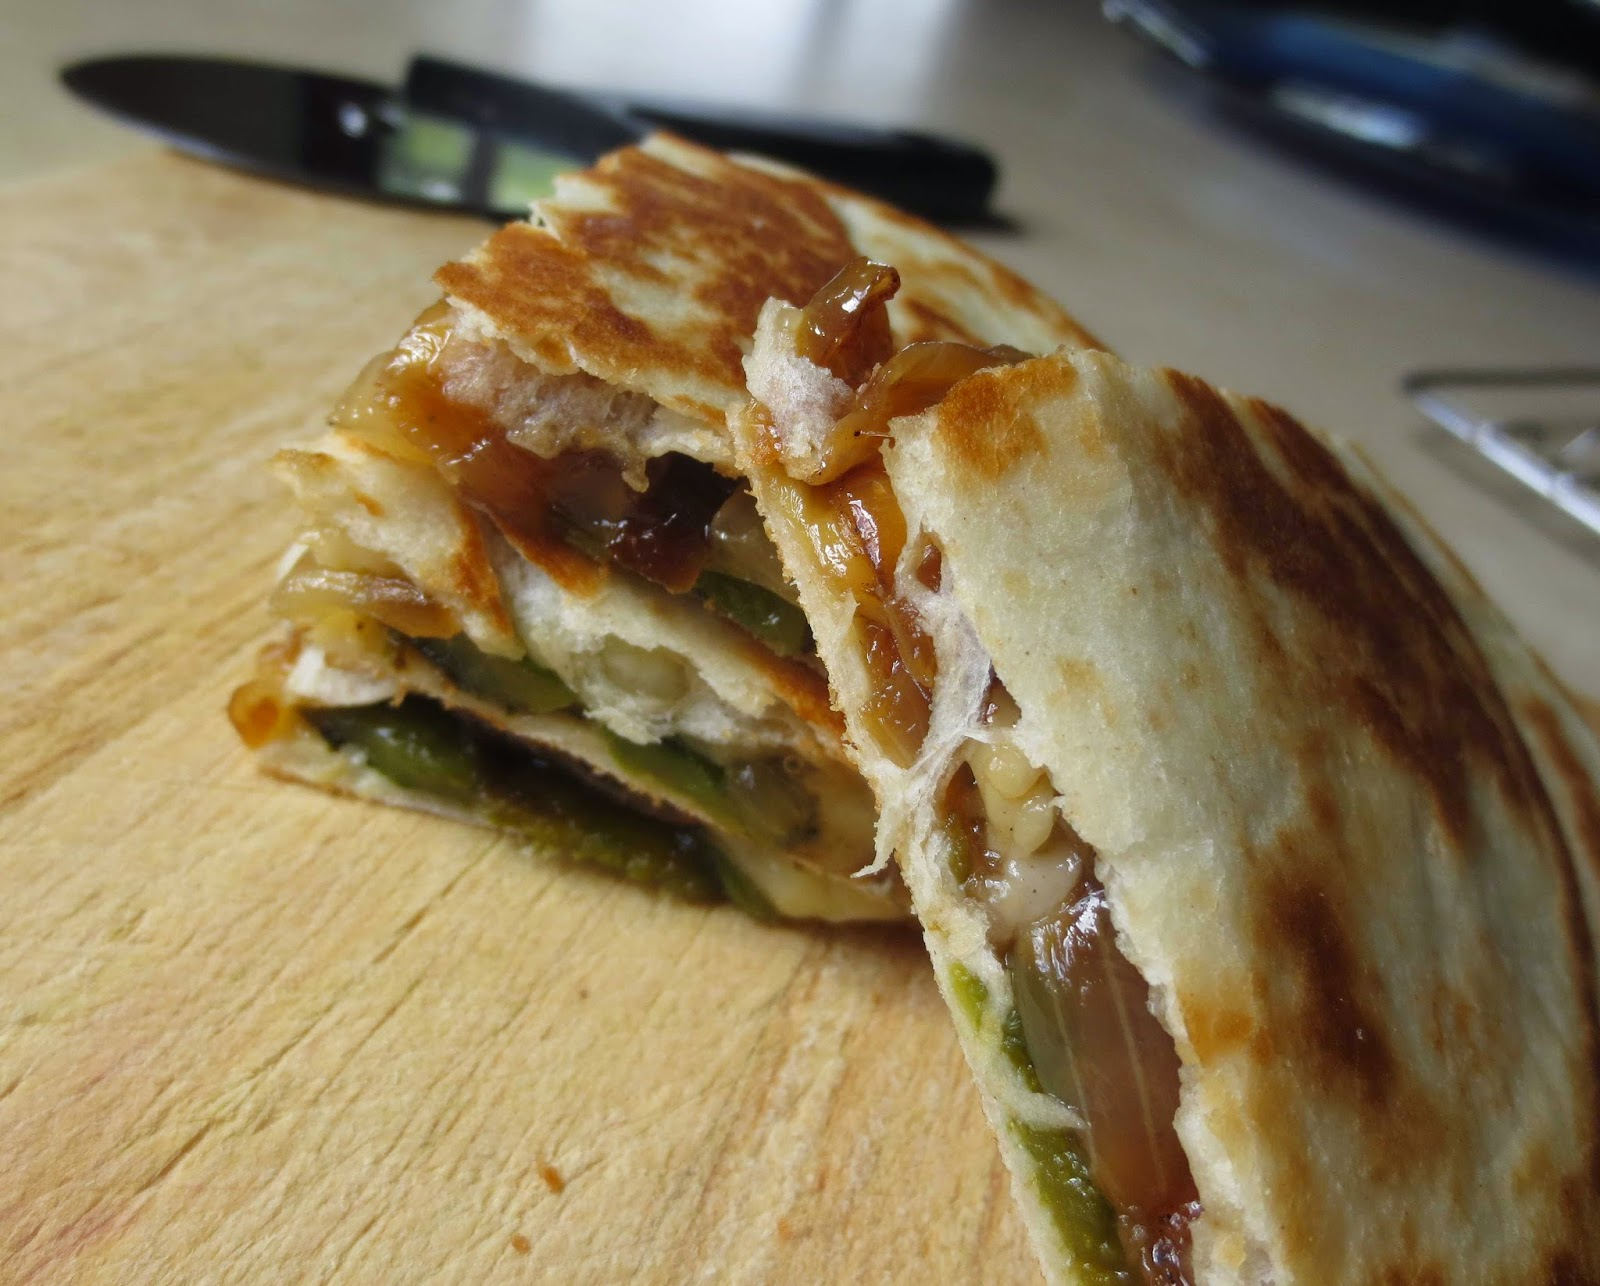 Planet of the Crepes: Poblano and onion quesadillas